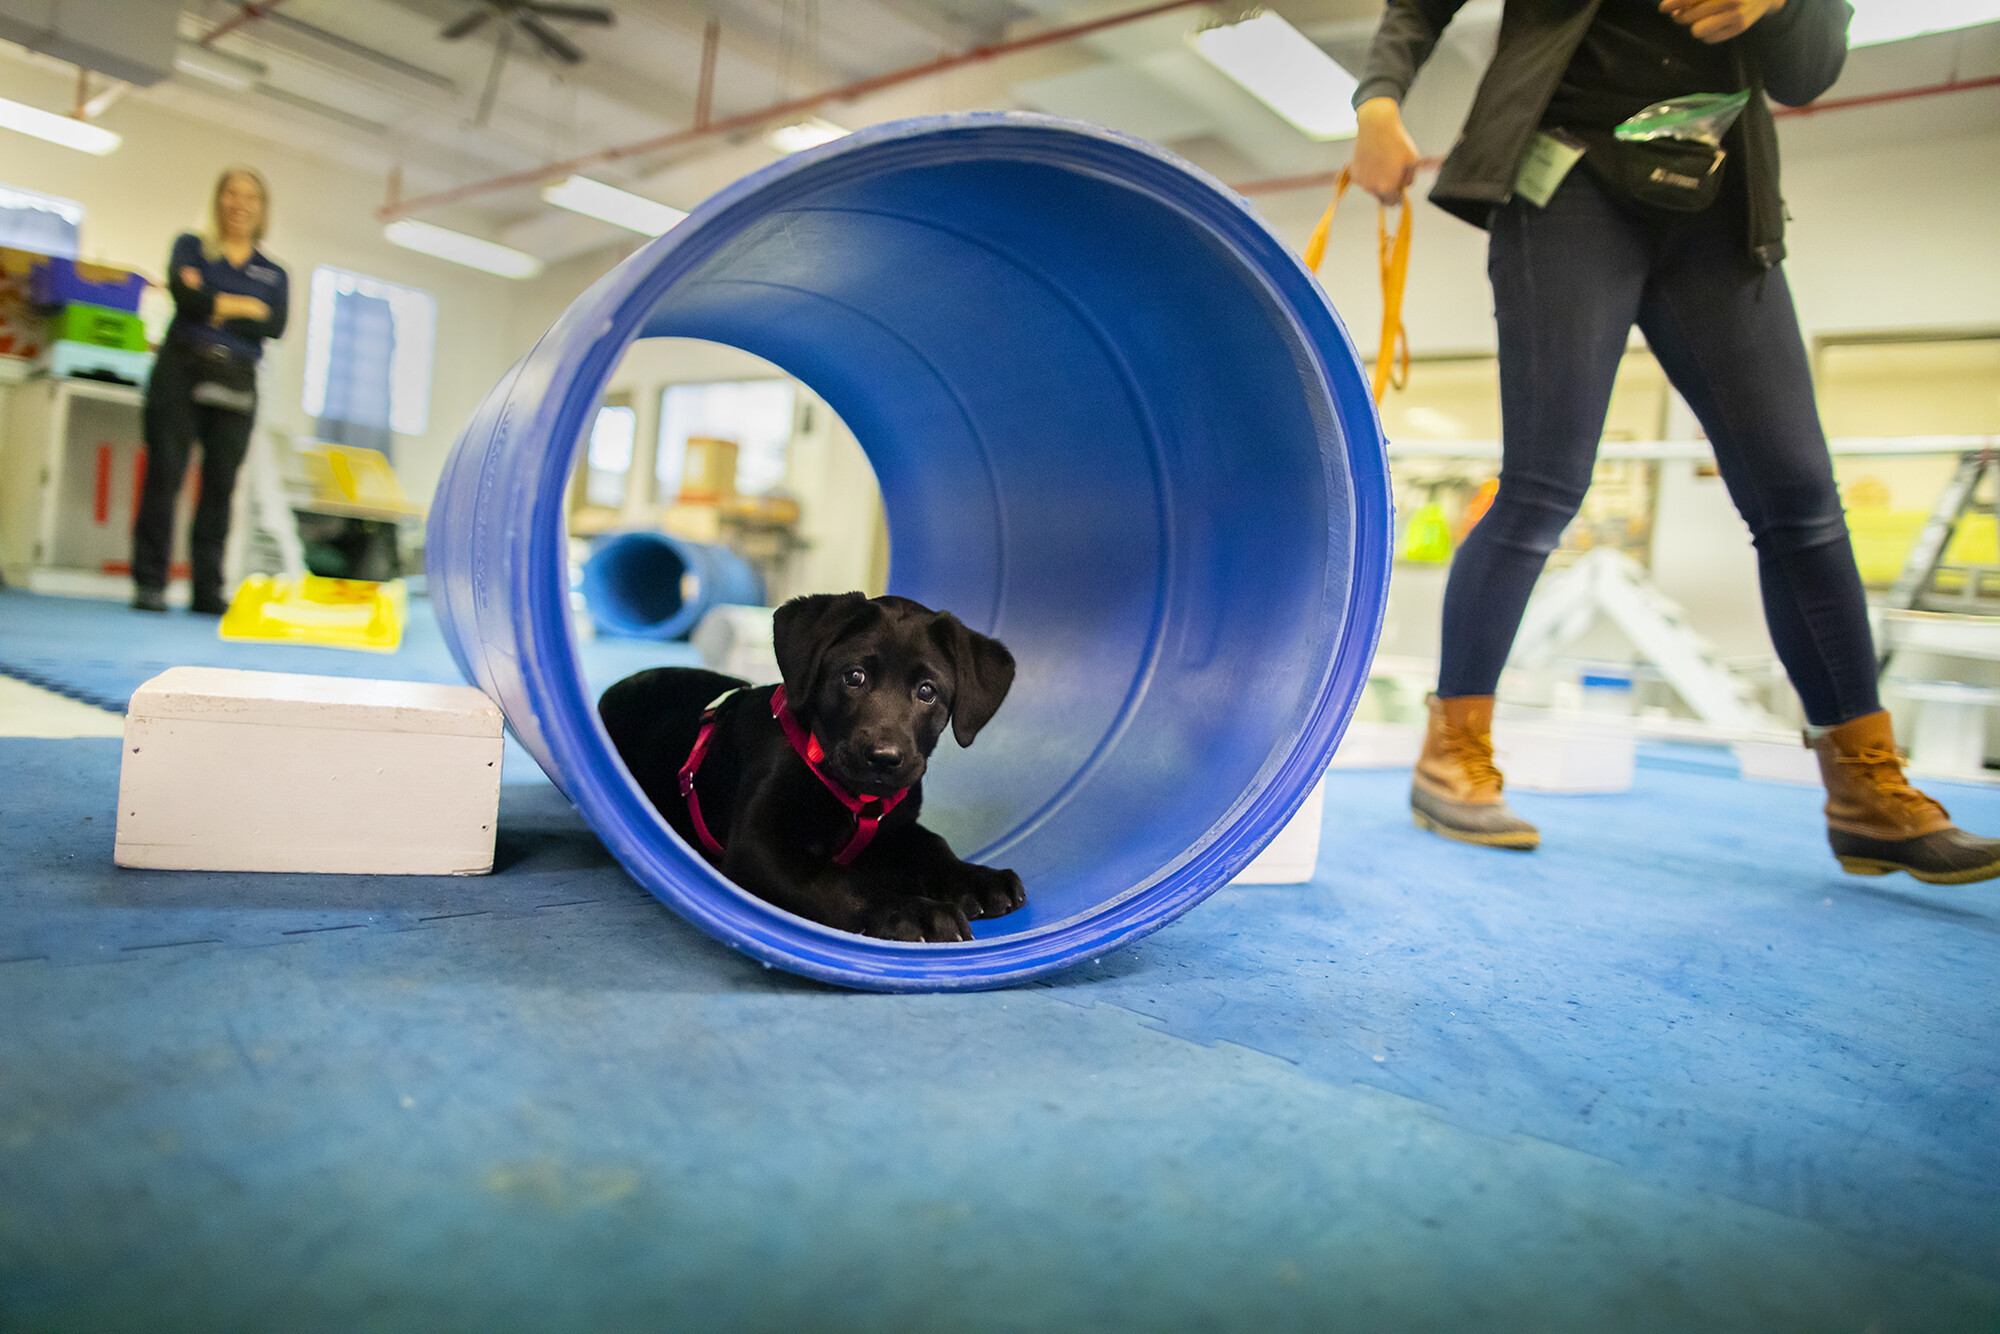 One of the U-litter puppies at the Working Dog Center sits in a tunnel